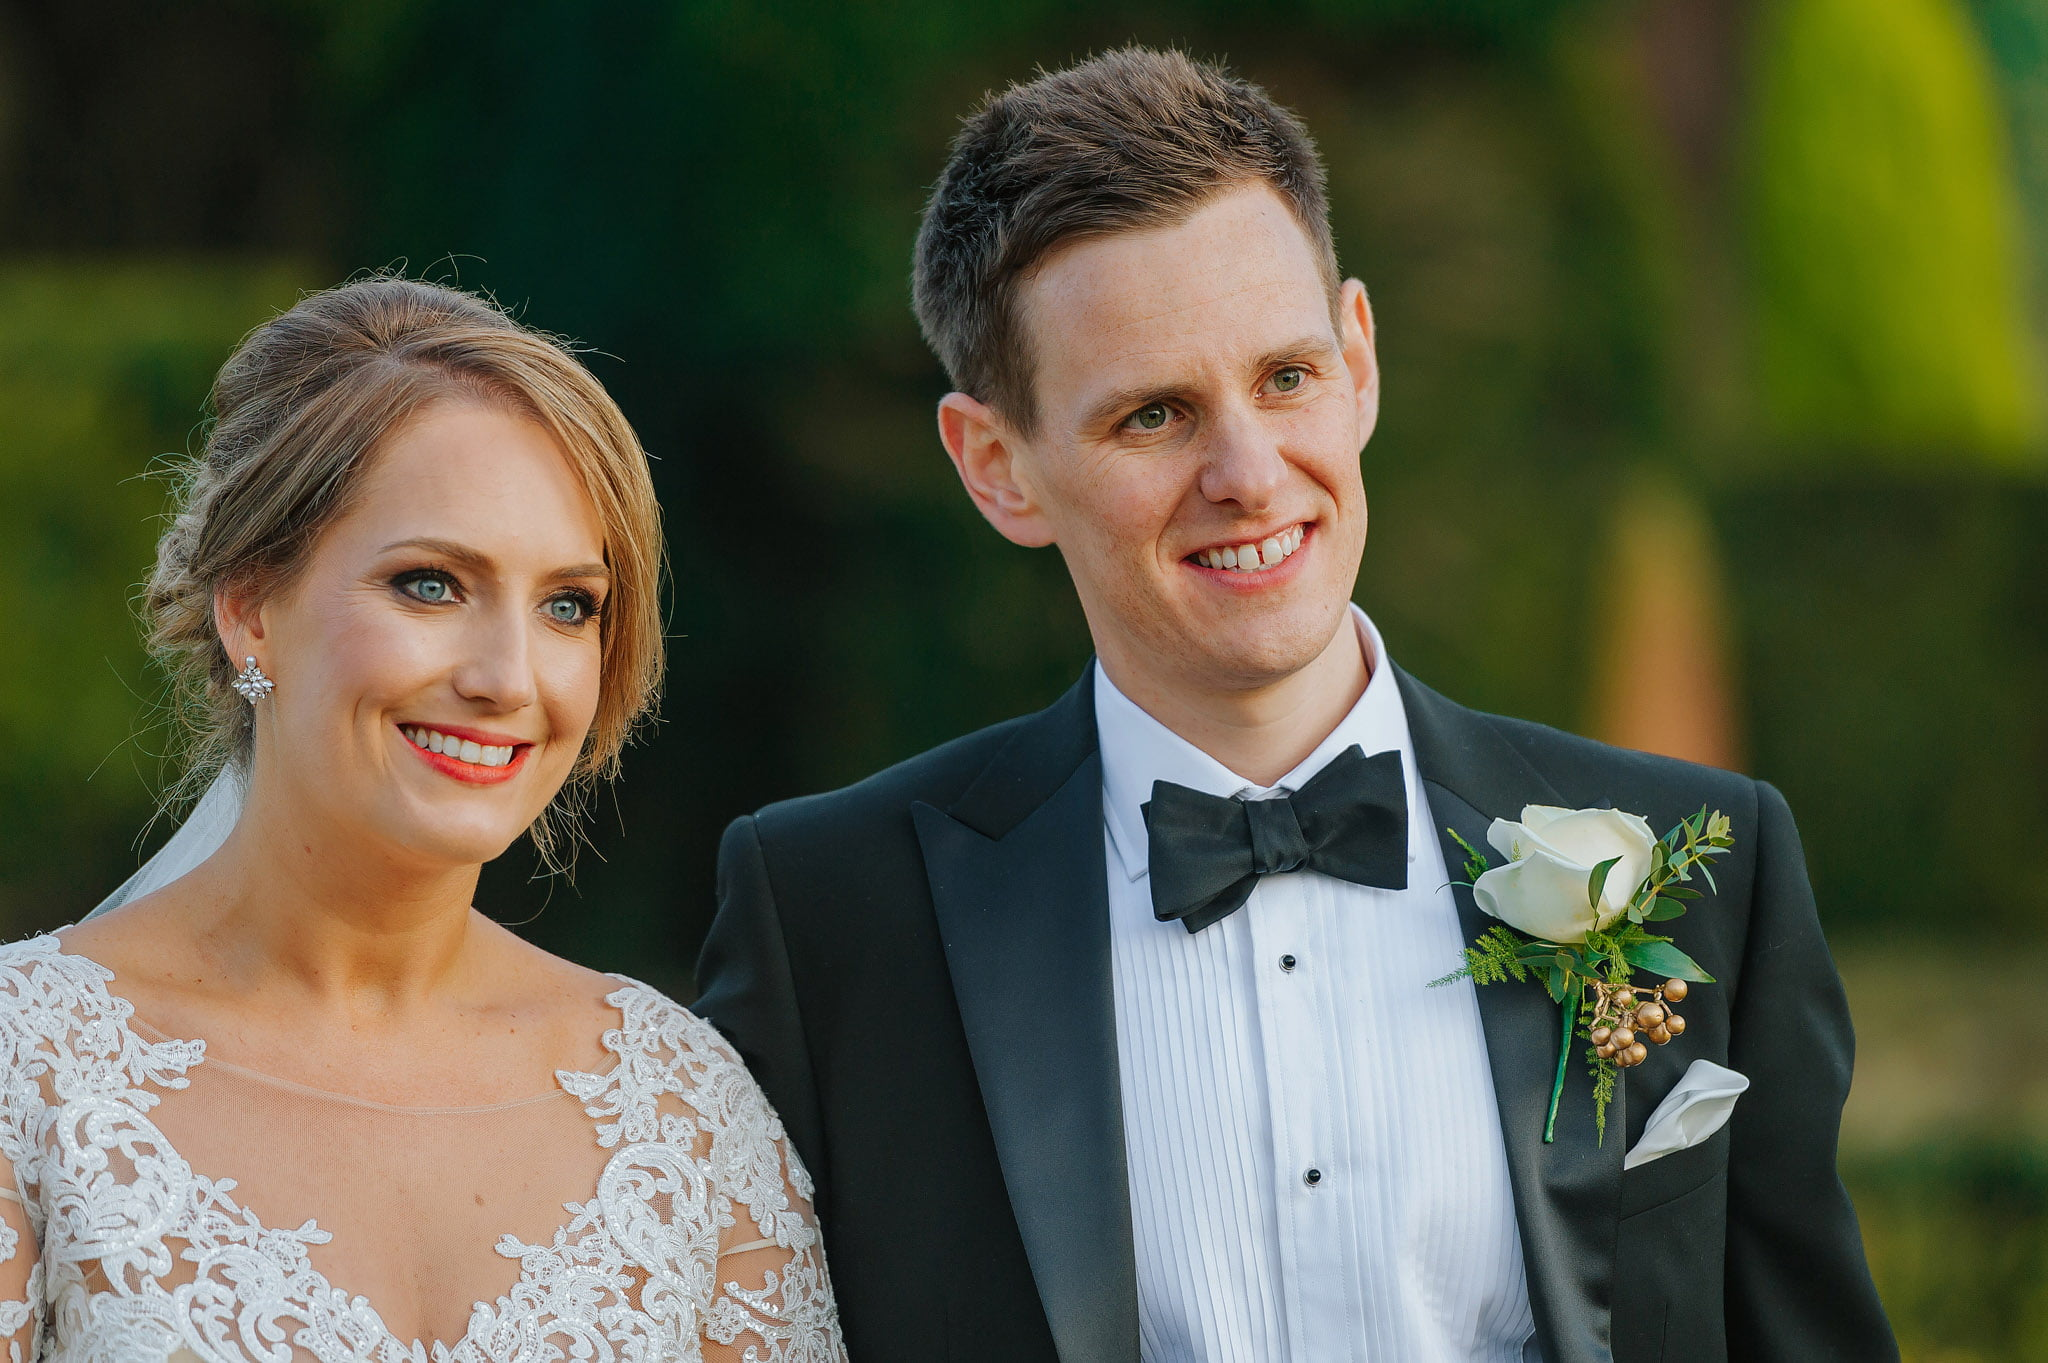 Coombe Abbey wedding in Coventry, Warwickshire - Sam + Matt 39